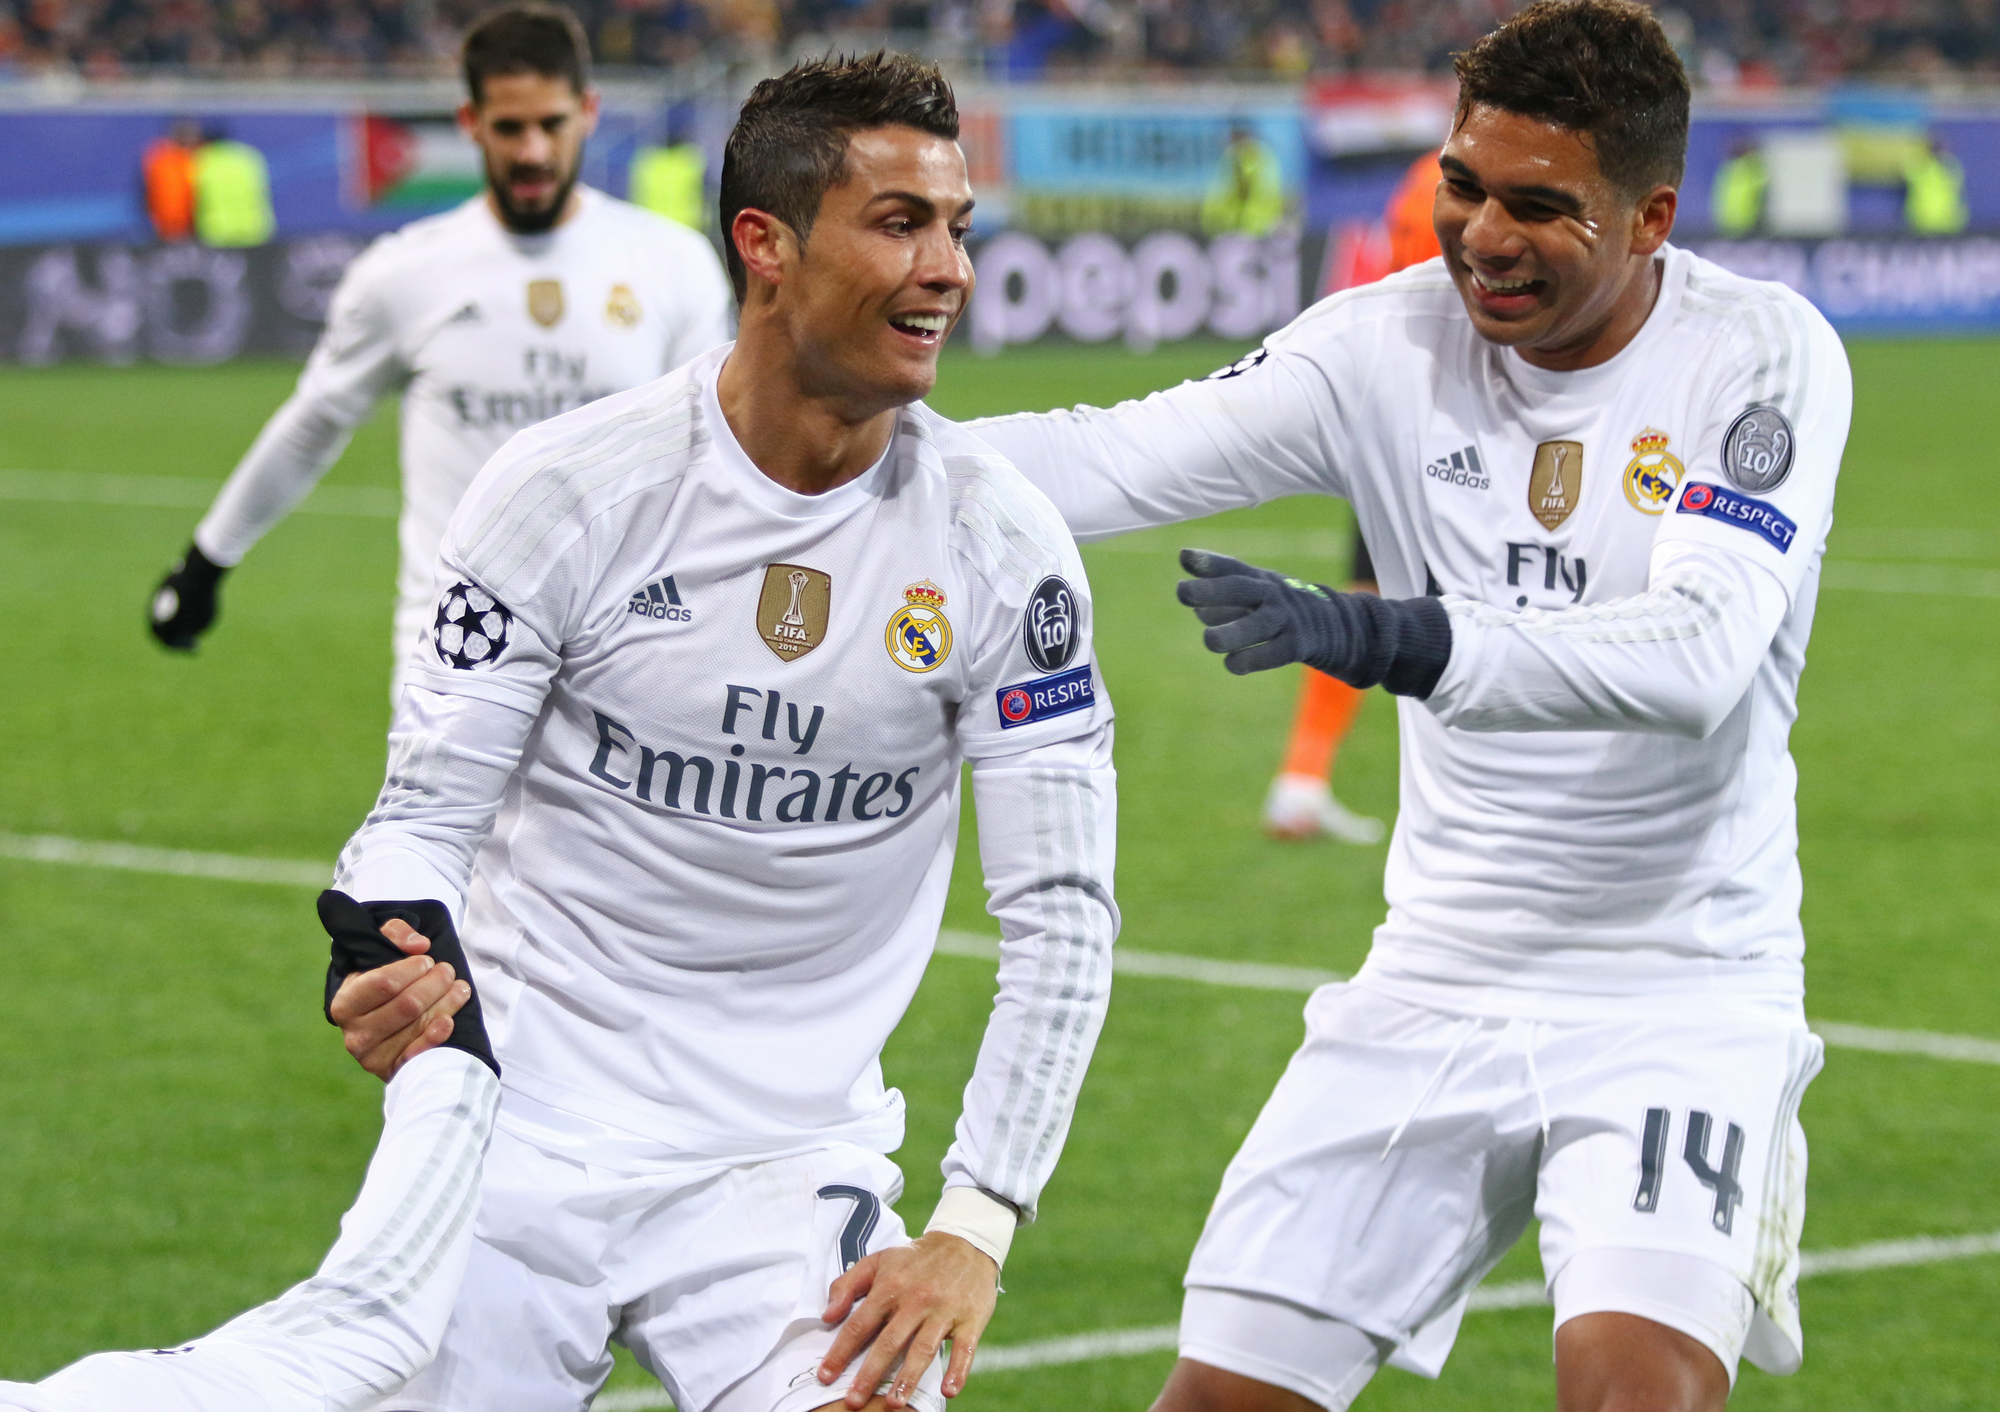 UEFA Champions League Football Betting Tips: Real Madrid vs Bayern Munich